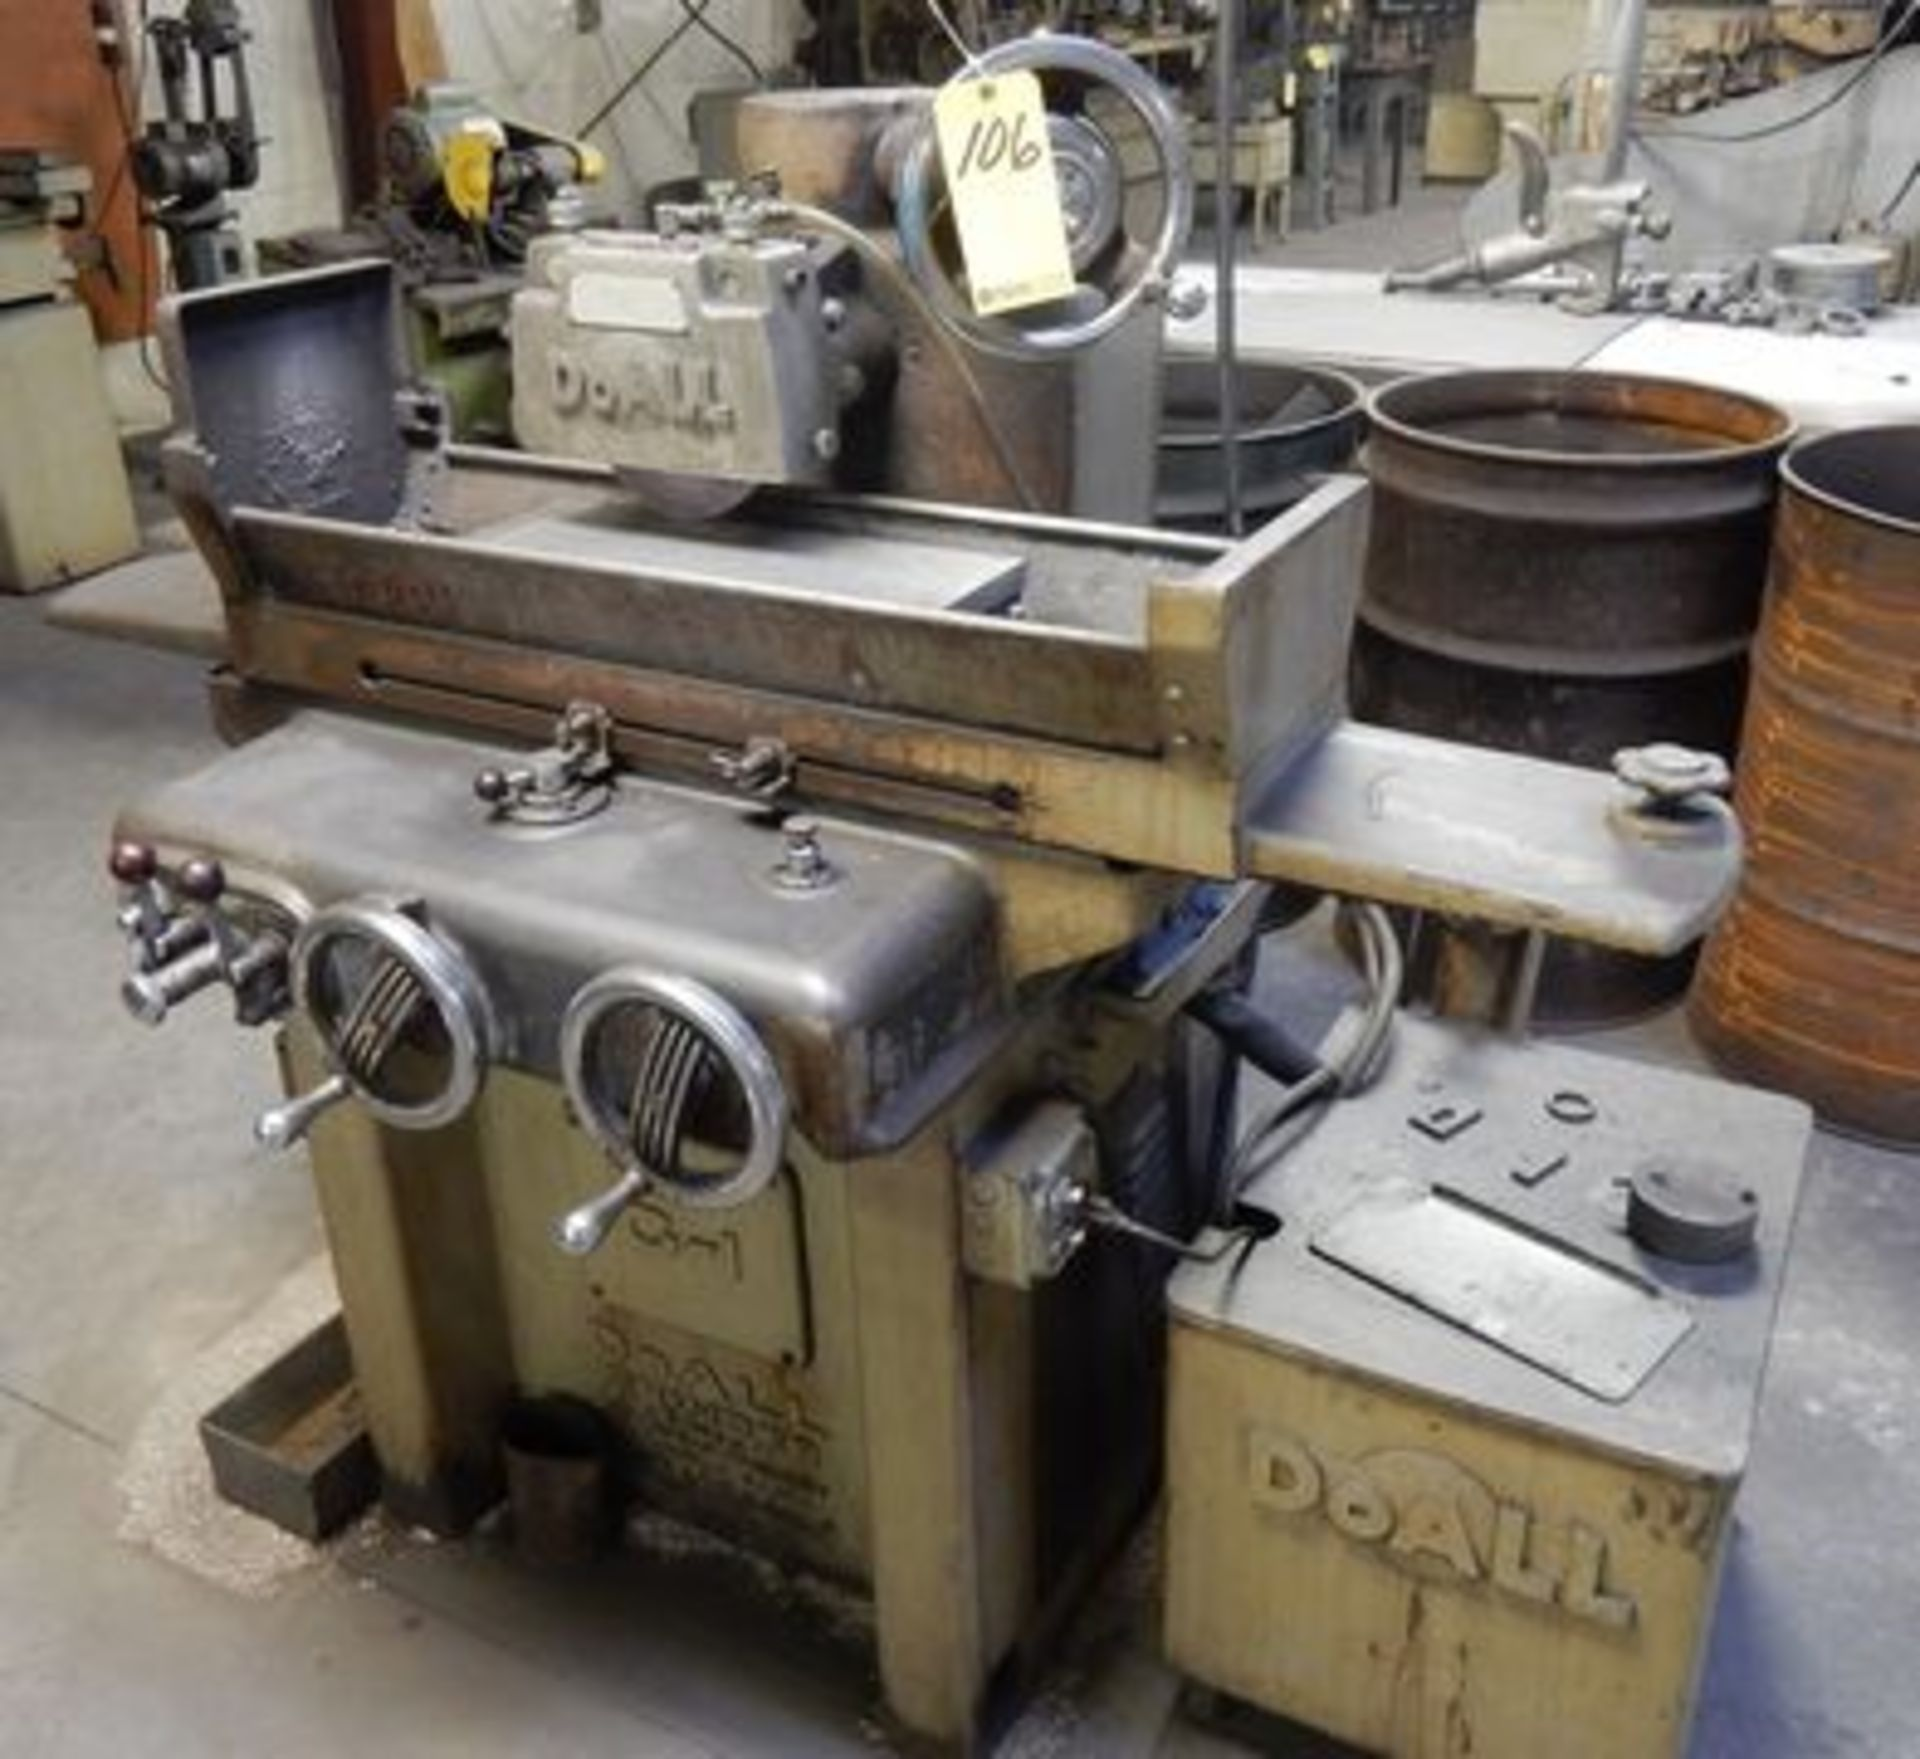 "Lot 106 - DOALL SURFACE GRINDER, M# G-1, SURFACE GRINDER, 51952, 6"" X 18"" MAGNETIC CHUCK, COOLANT"